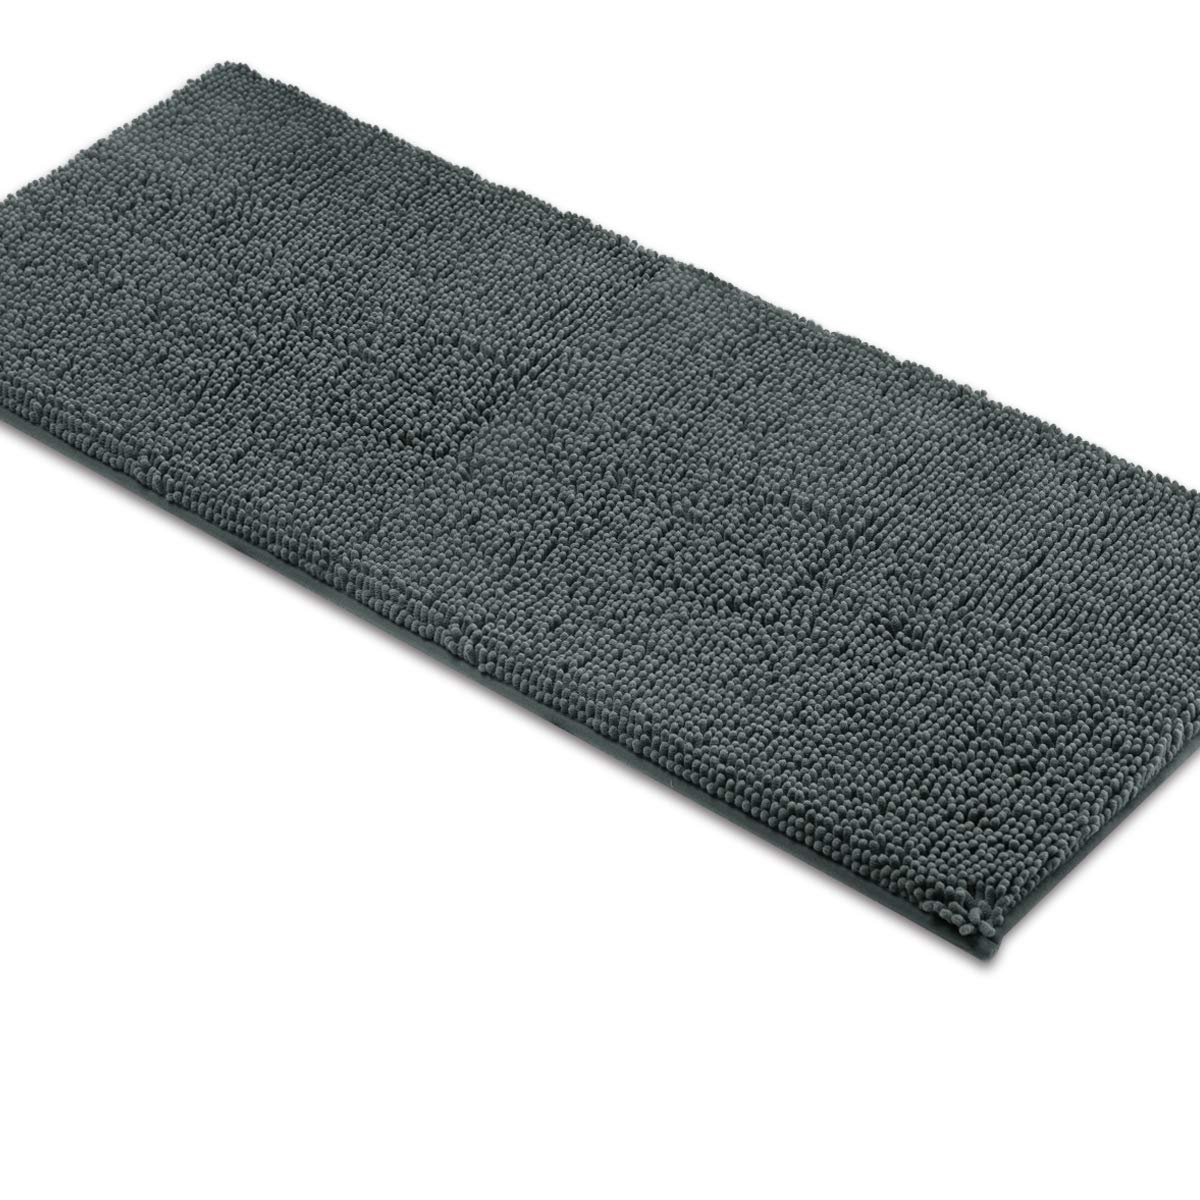 MAYSHINE Bath mat Runners for Bathroom Rugs(47X27.5inch) Long Floor mats  Extra Soft Absorbent Thickening Shaggy Microfiber Machine-Washable Perfect  for